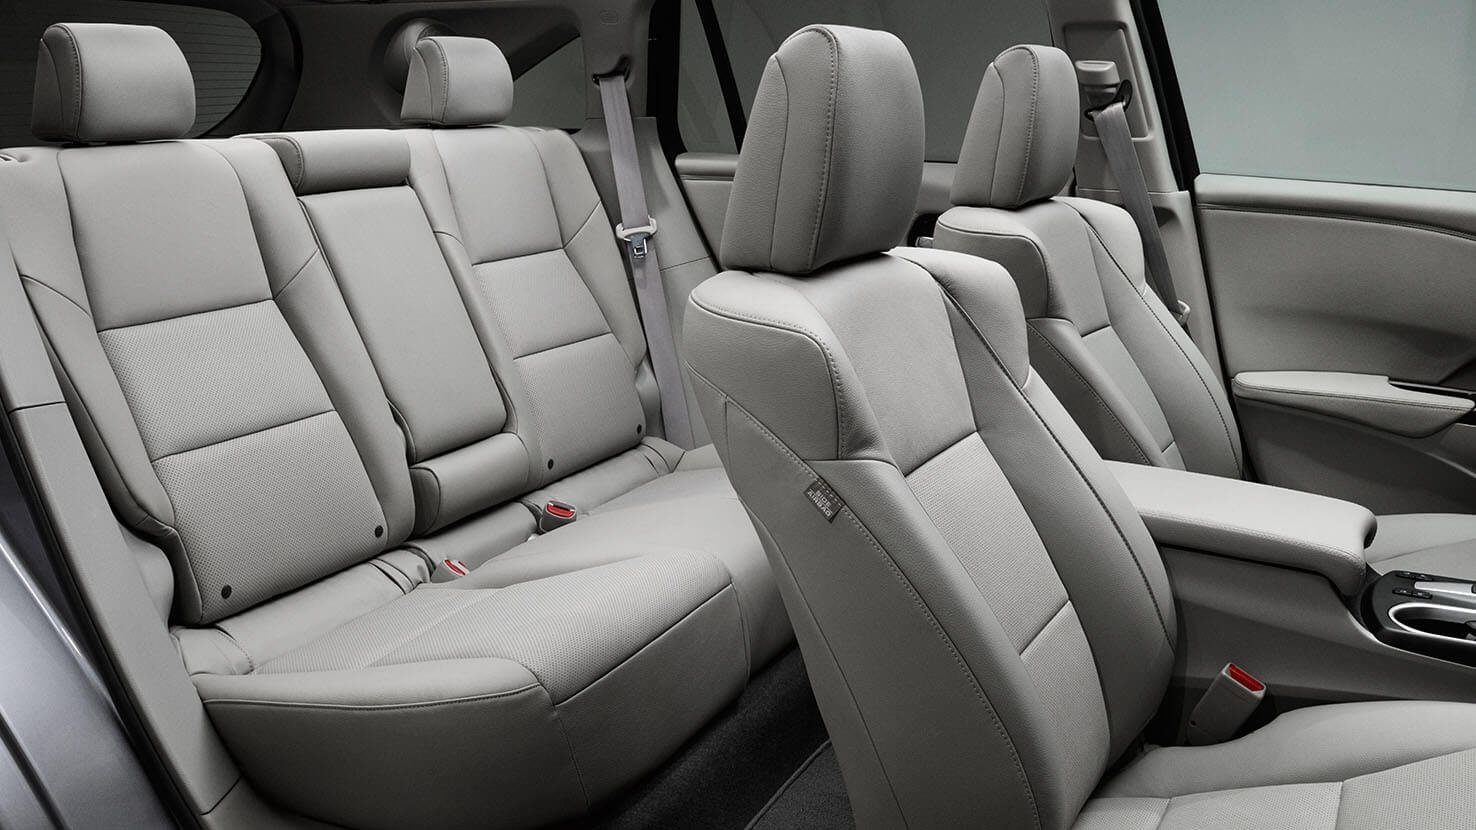 2018 Acura RDX Comfort Style Seating